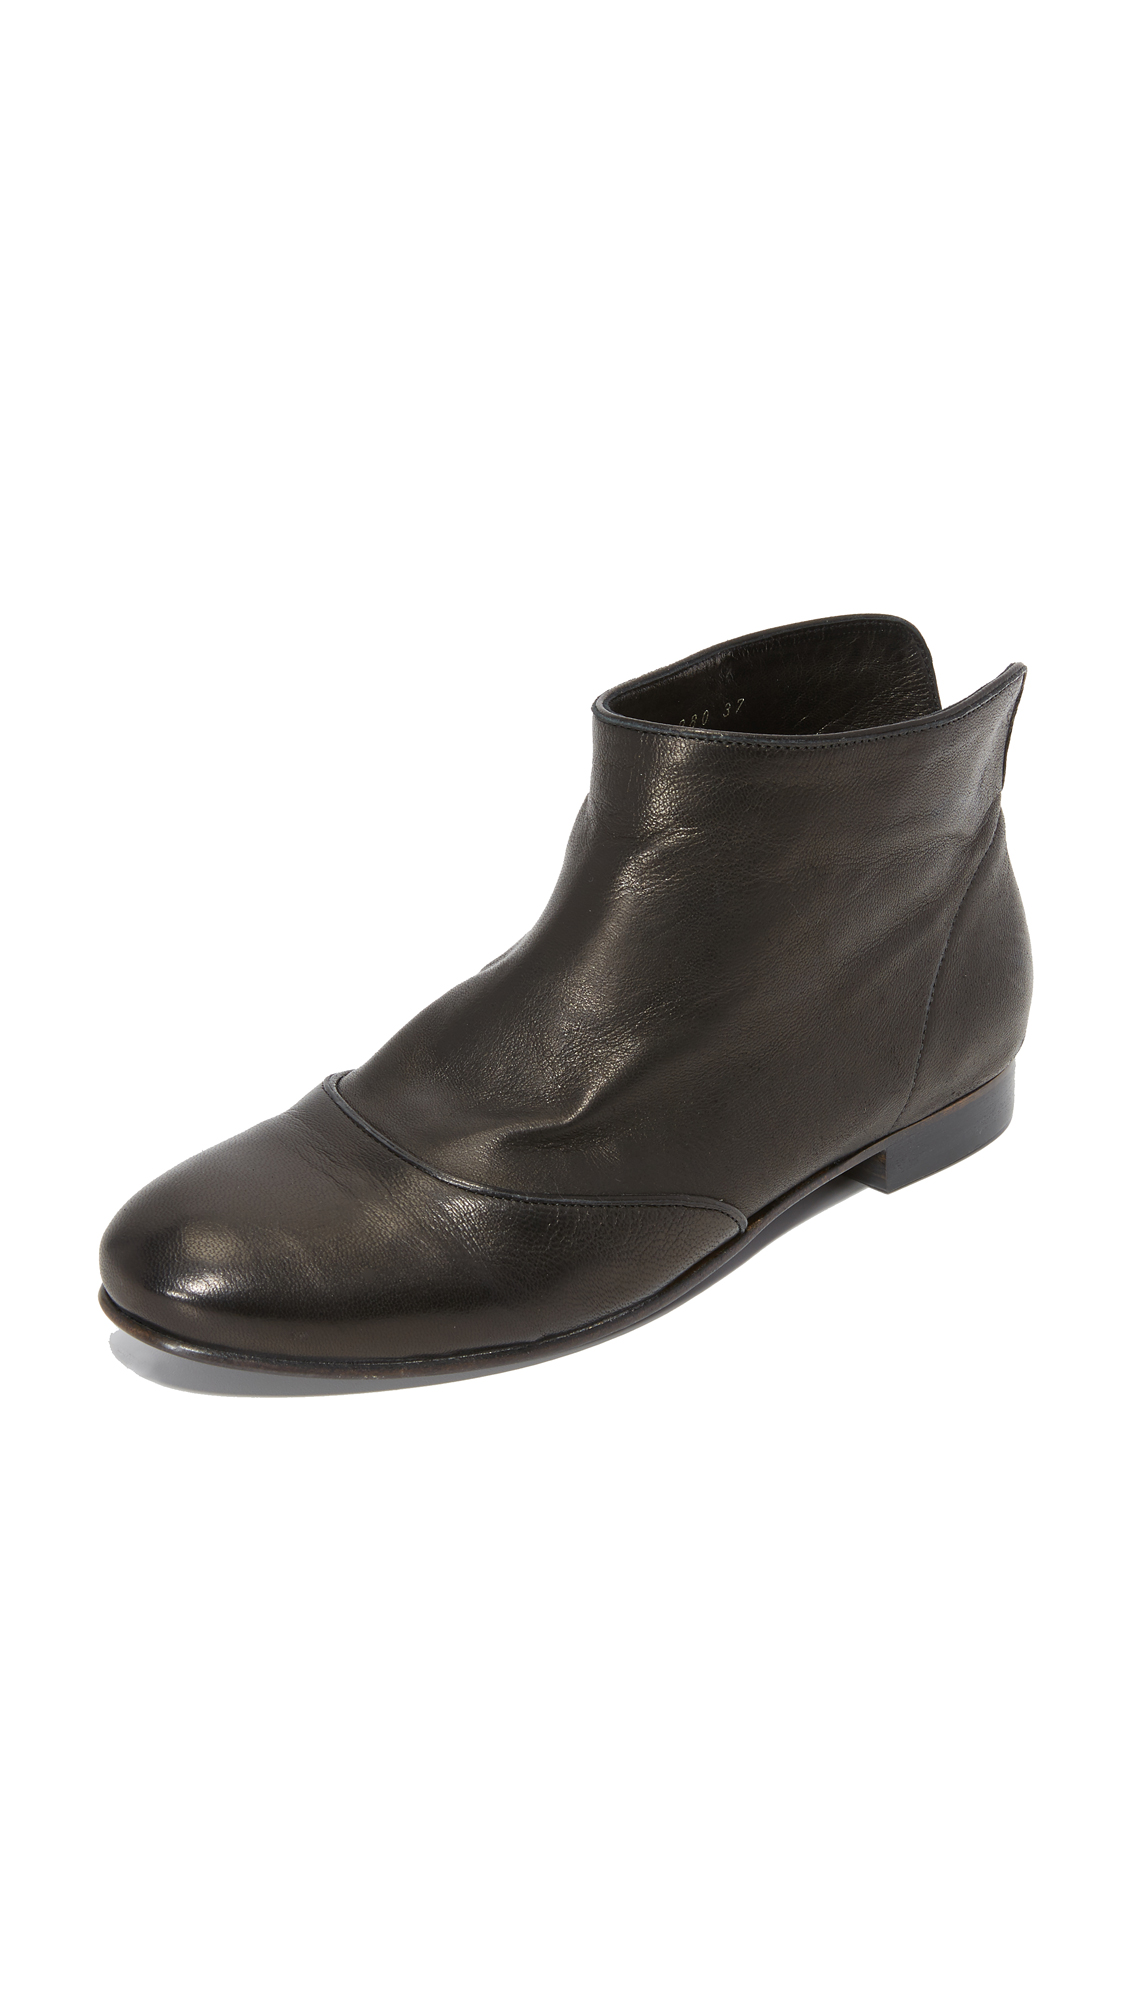 Coclico Shoes Isla Booties - Black